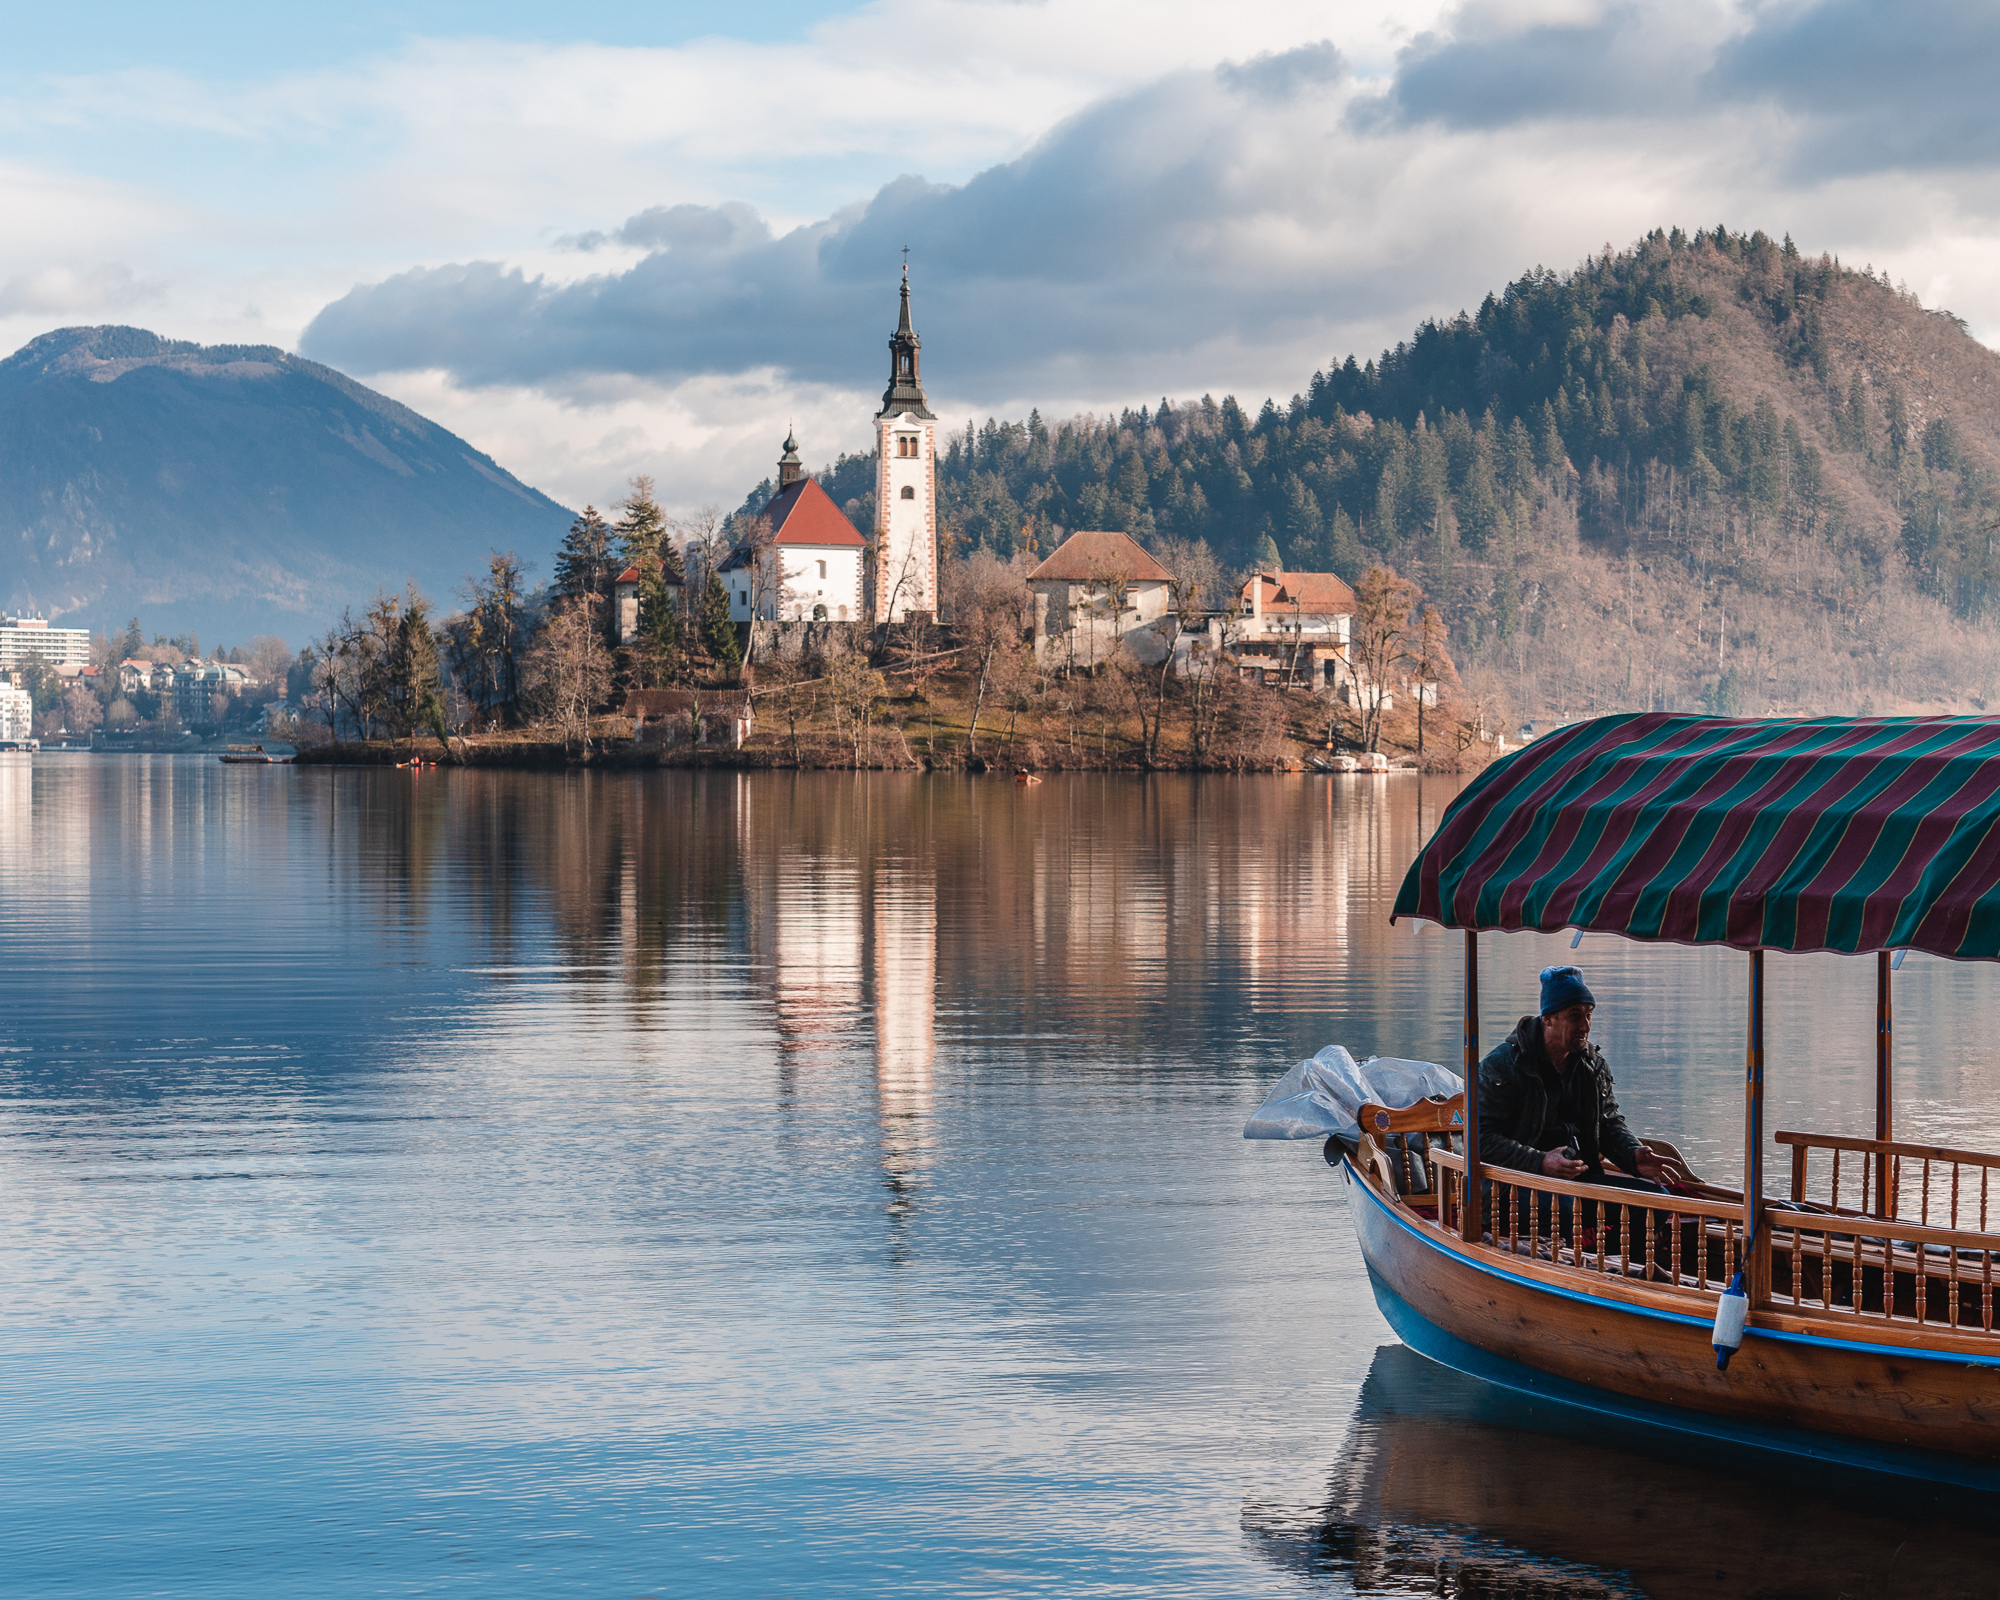 Assumption of Mary Pilgrimage Church on Lake Bled Island with Pl